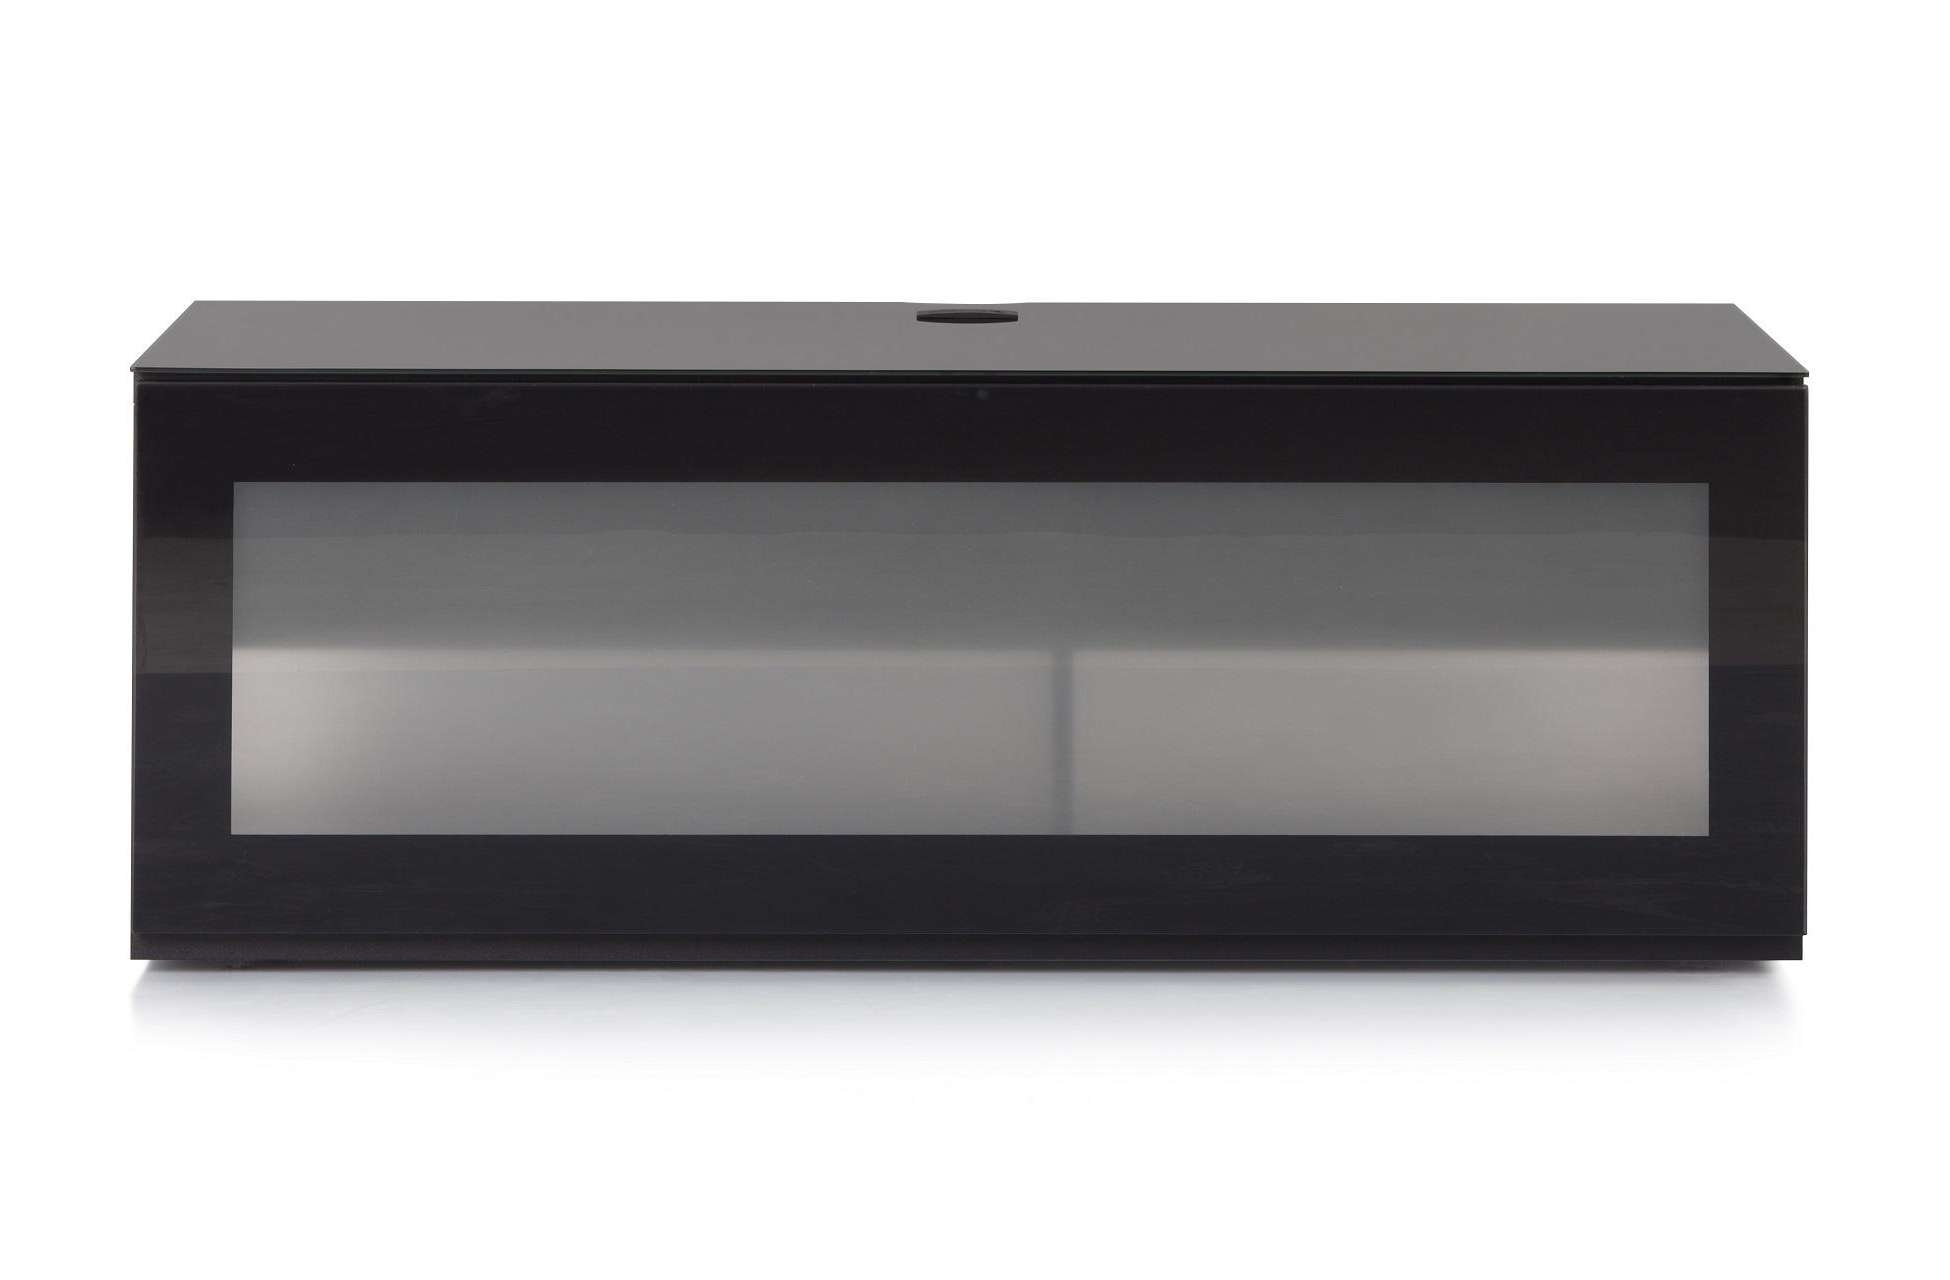 Sonorous St120i Gloss Black | Tv Cabinet | Richer Sounds For Sonorous Tv Cabinets (View 16 of 20)